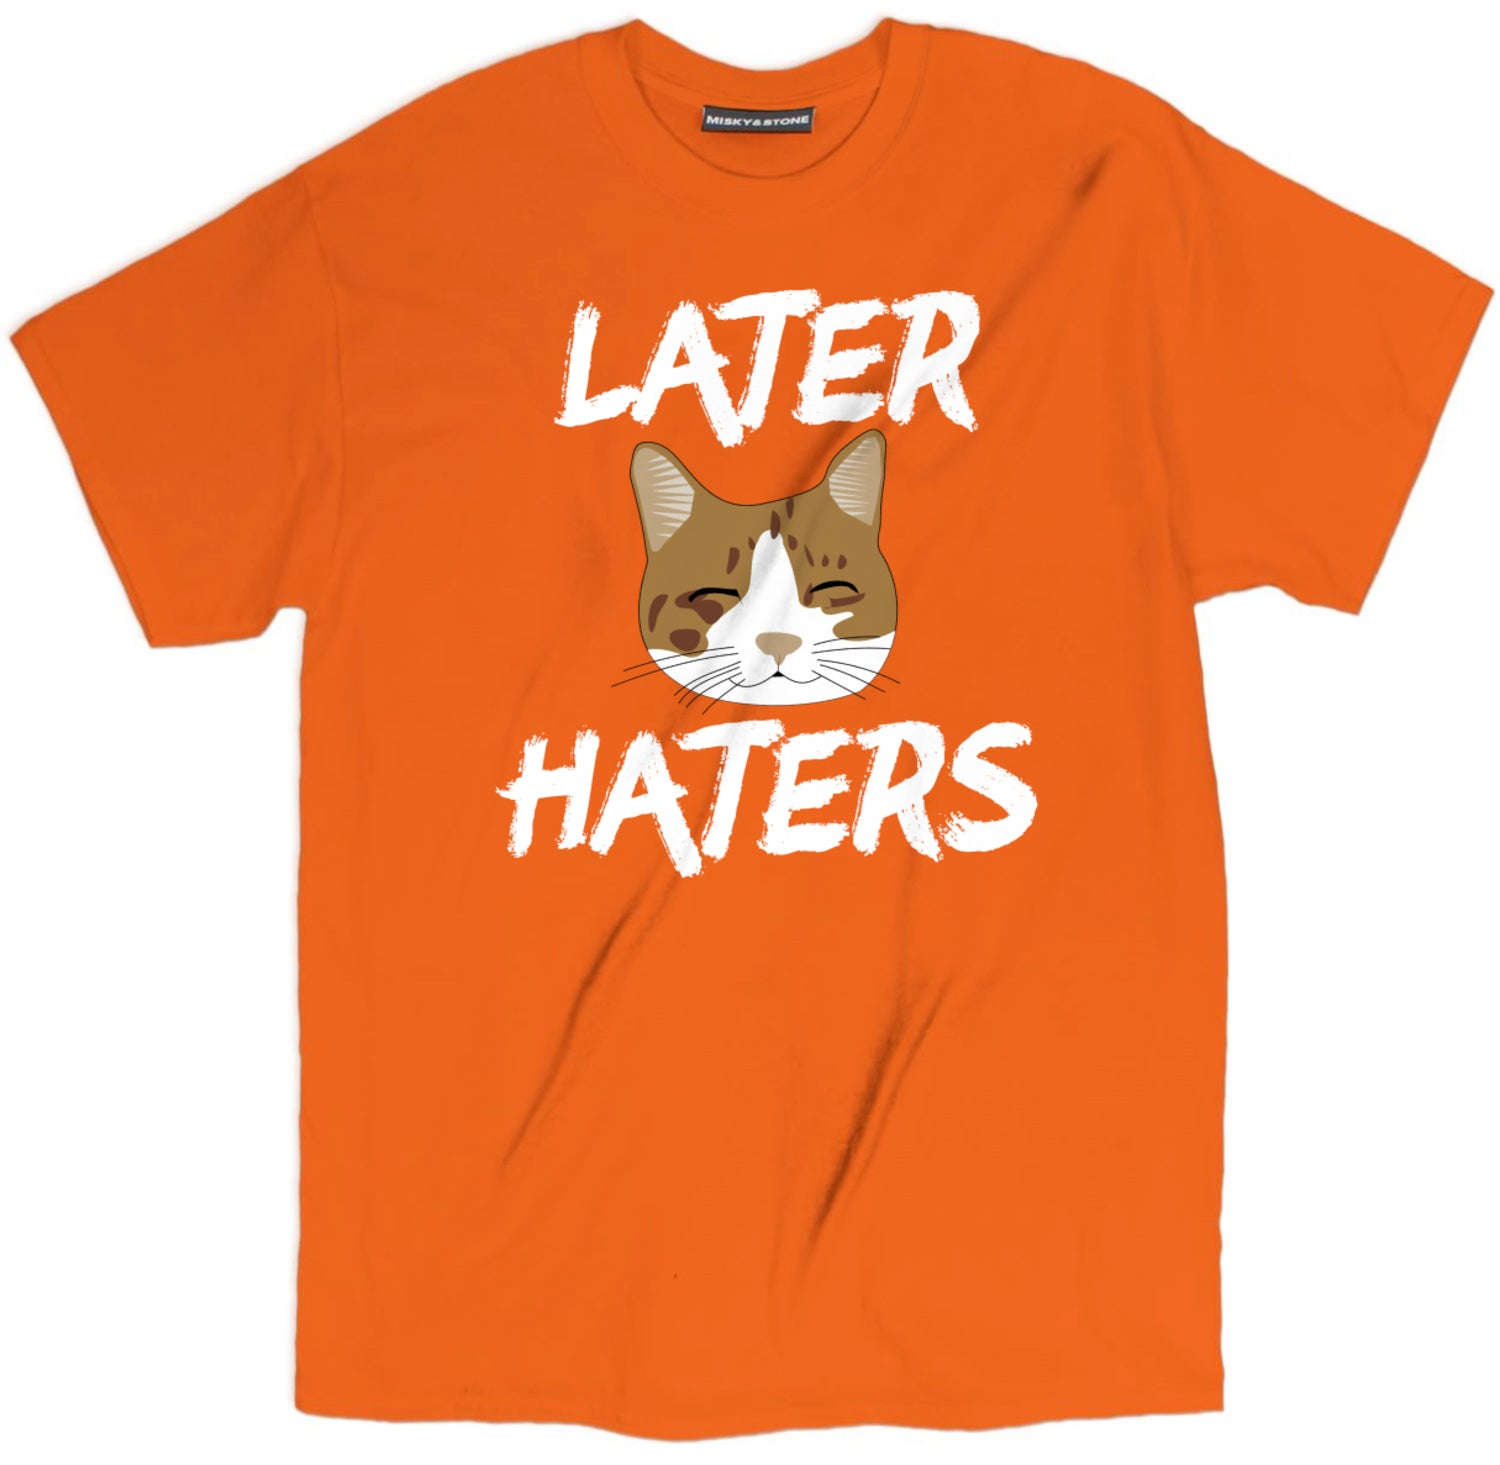 Later Haters Tee